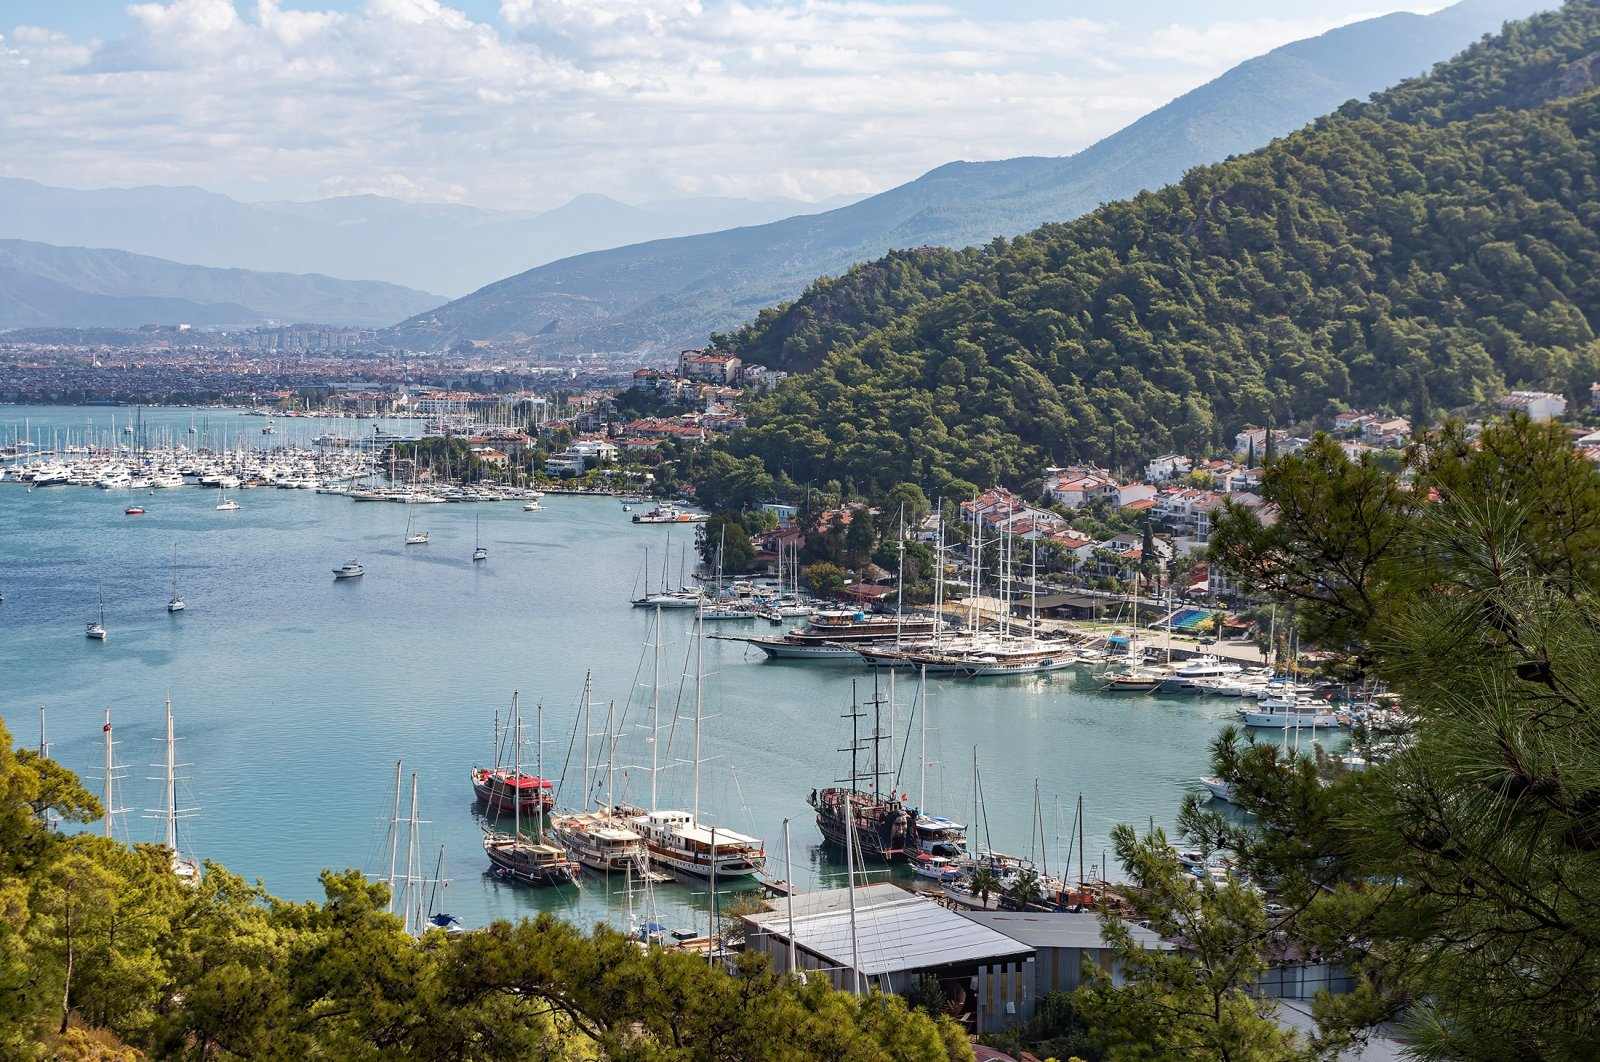 A view of the Gulf of Fethiye. (Shutterstock Photo)